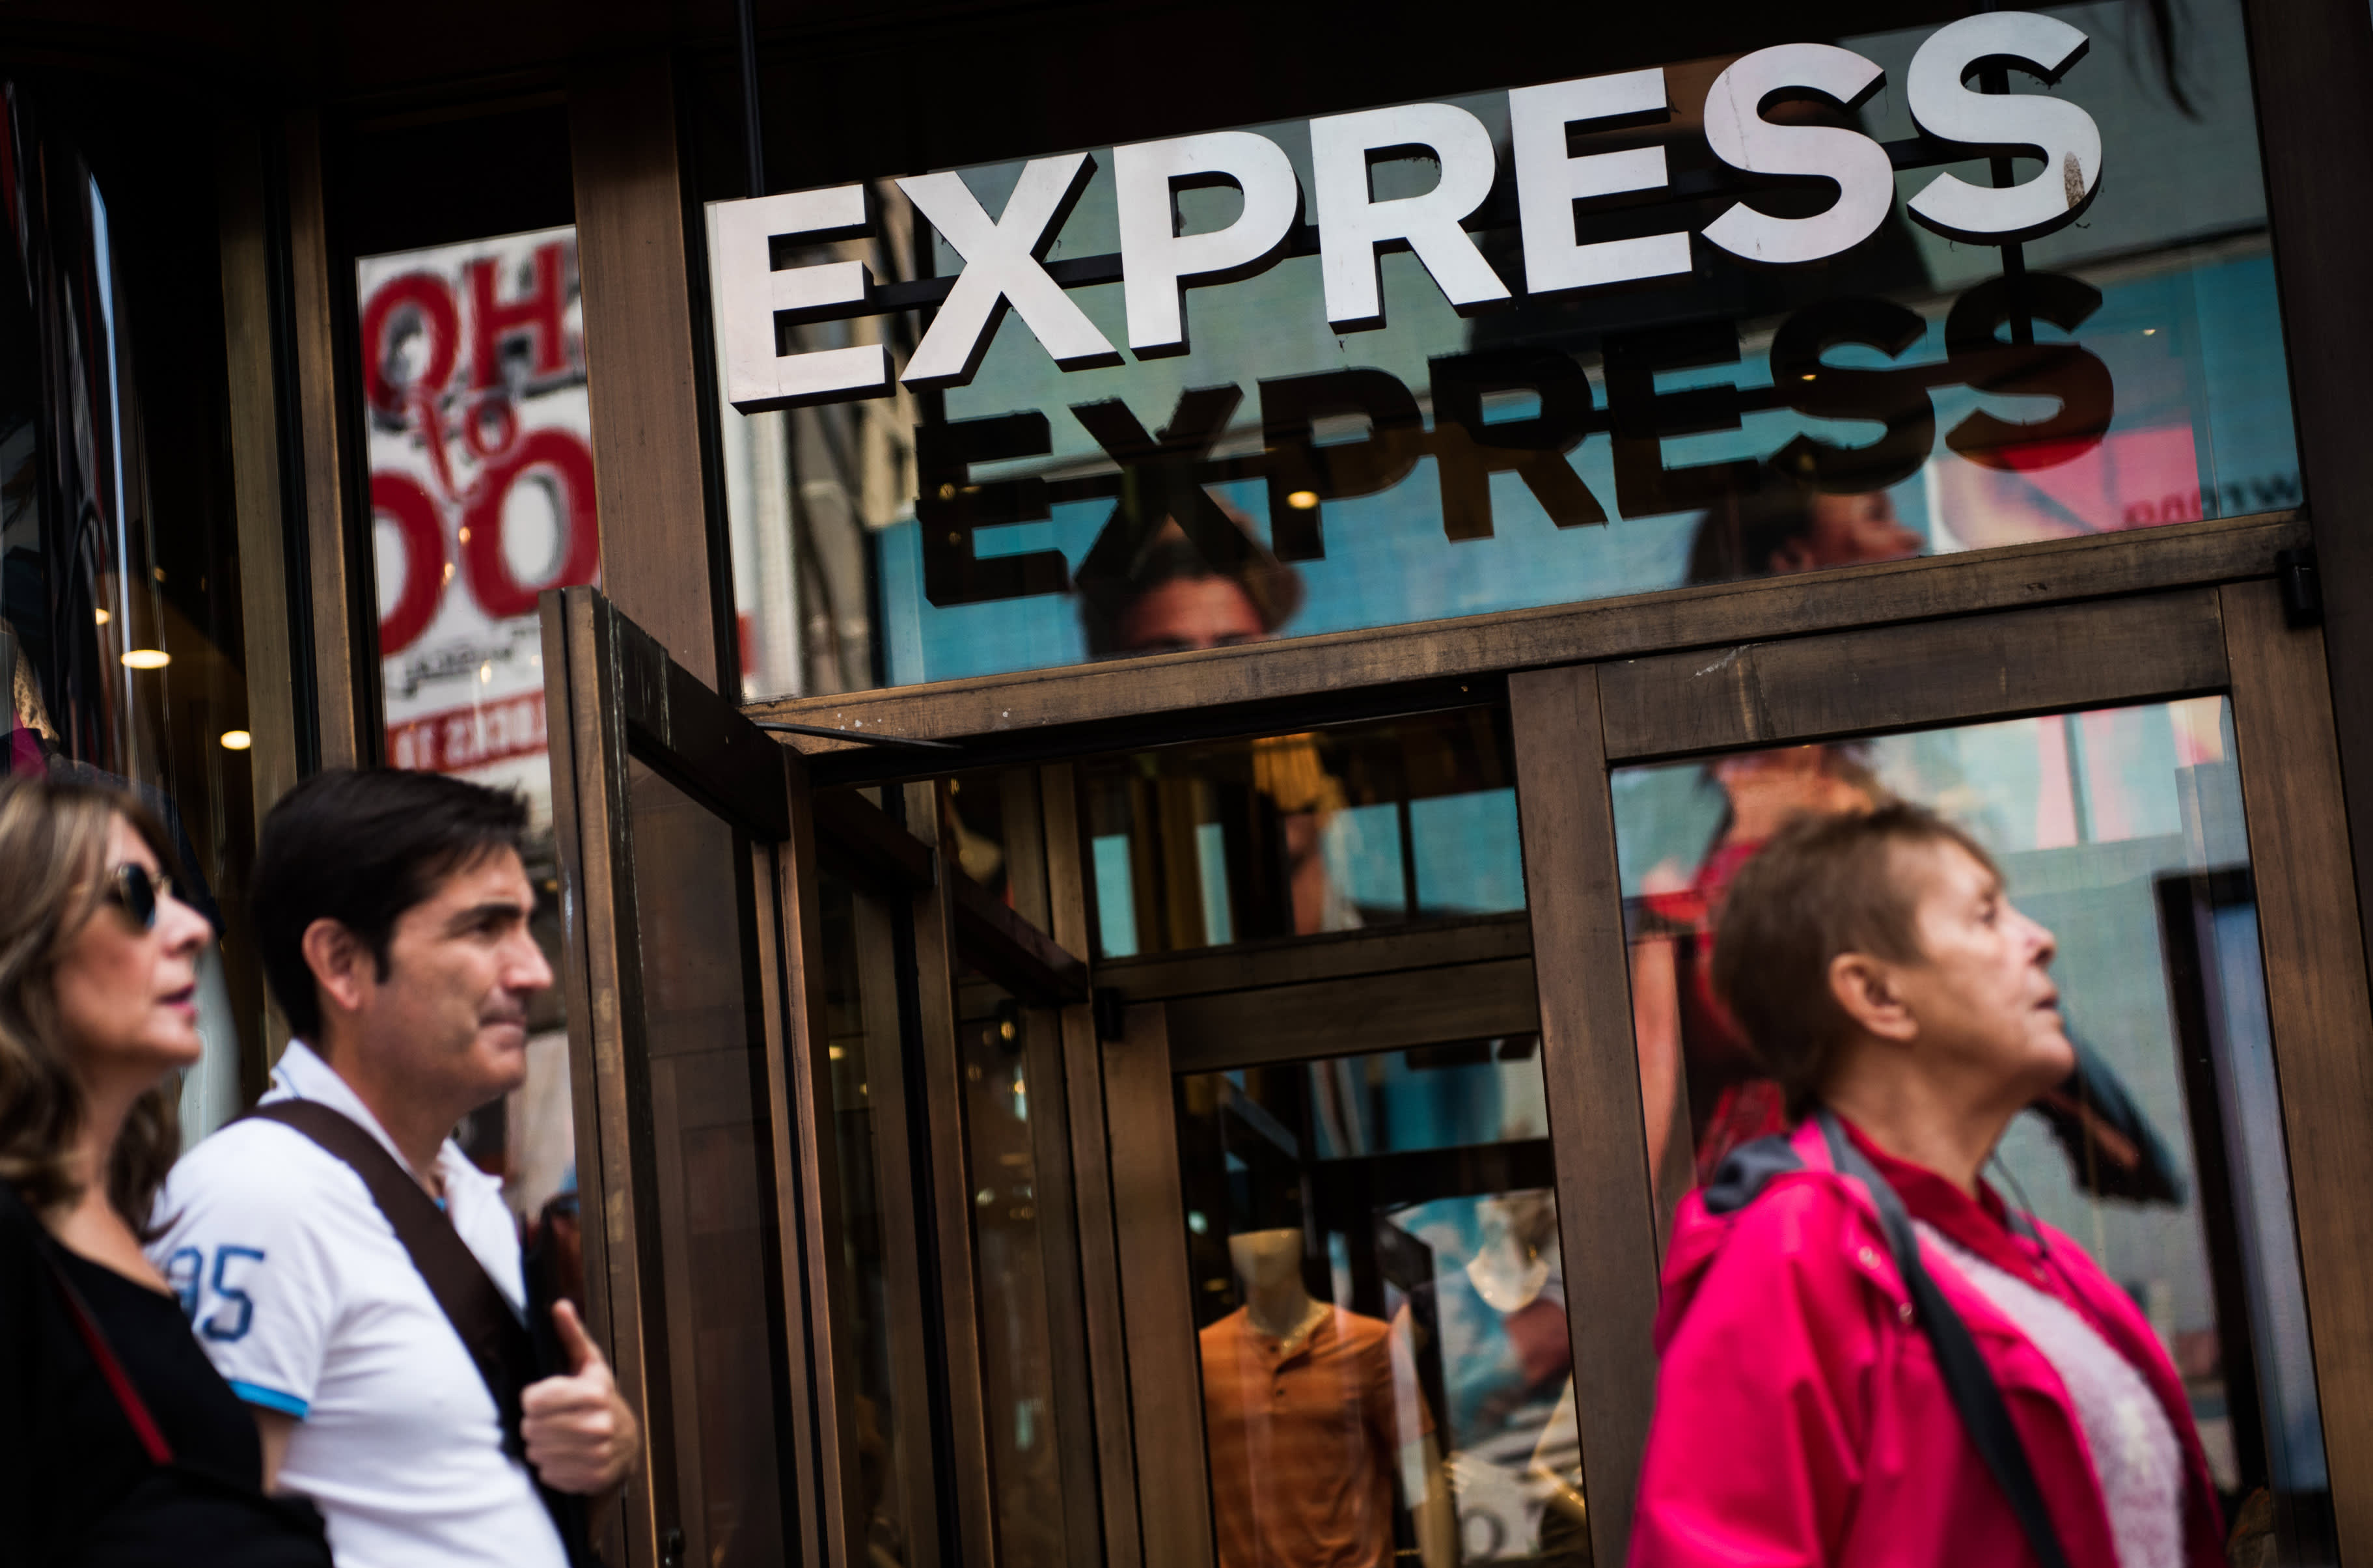 Clothing retailer Express shares jump on plans to shutter 100 stores by 2022, cut costs